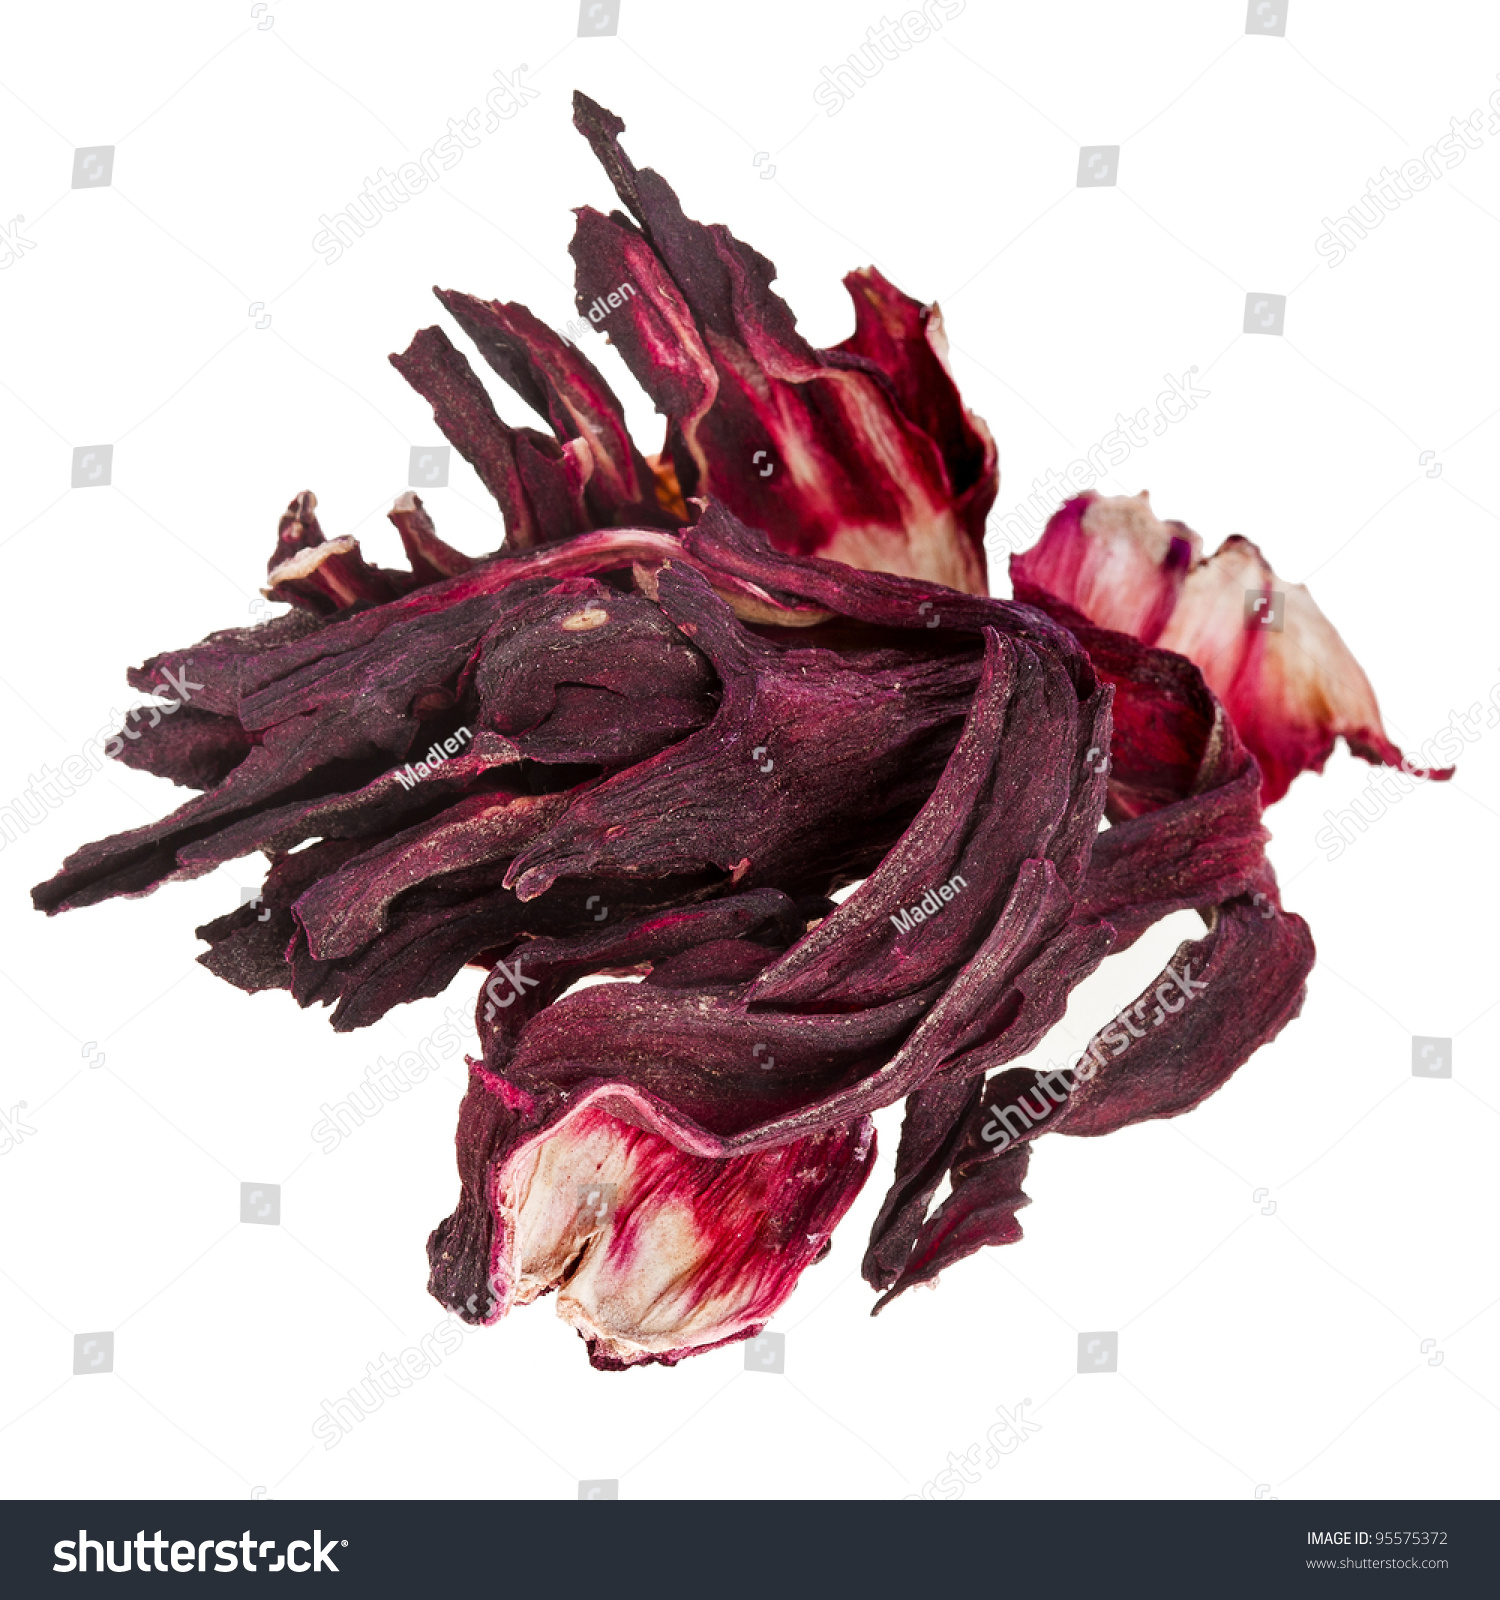 Dried hibiscus flower tea isolated on stock photo 100 legal dried hibiscus flower tea isolated on white background izmirmasajfo